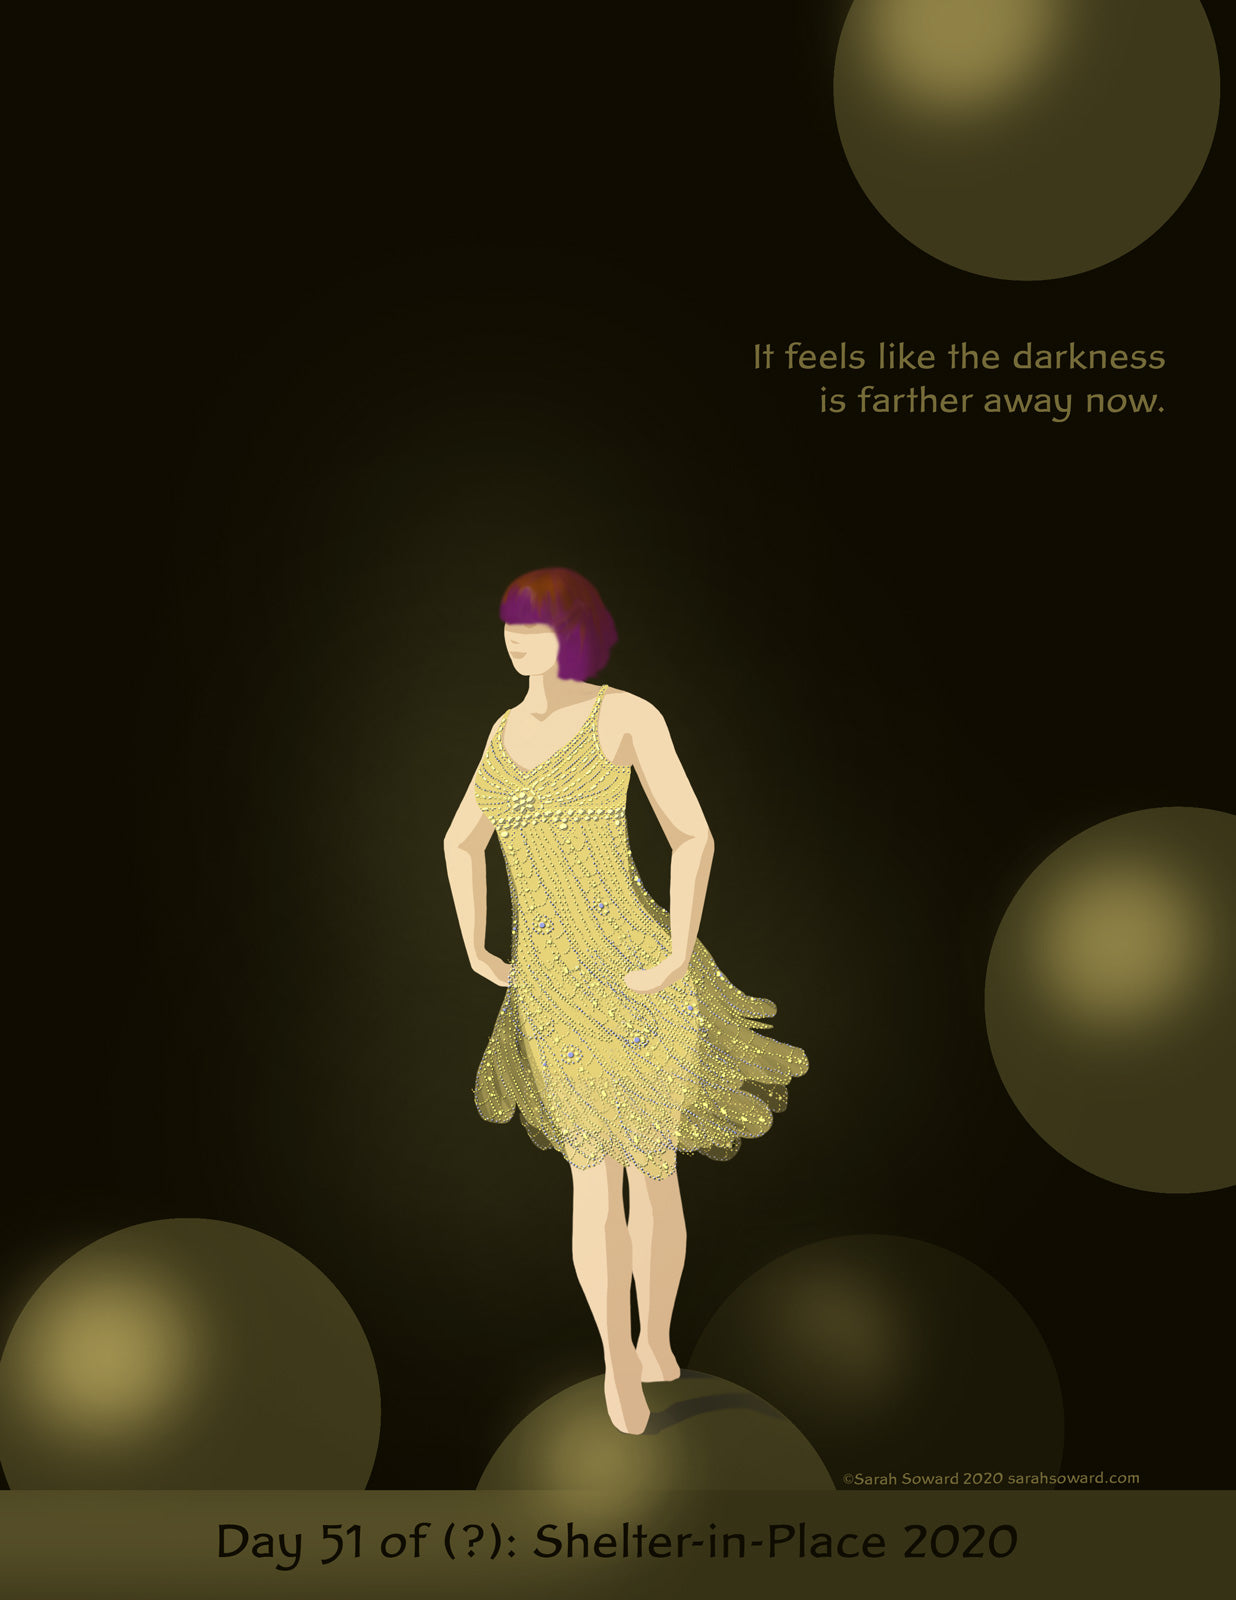 A woman moves, her sparkling golden dress swirling around her. She might be dancing. She's glowing in and with her dress. She's coming out of darkness, riding a giant golden bubble. The text on the image reads  It feels like the darkness is farther away now.